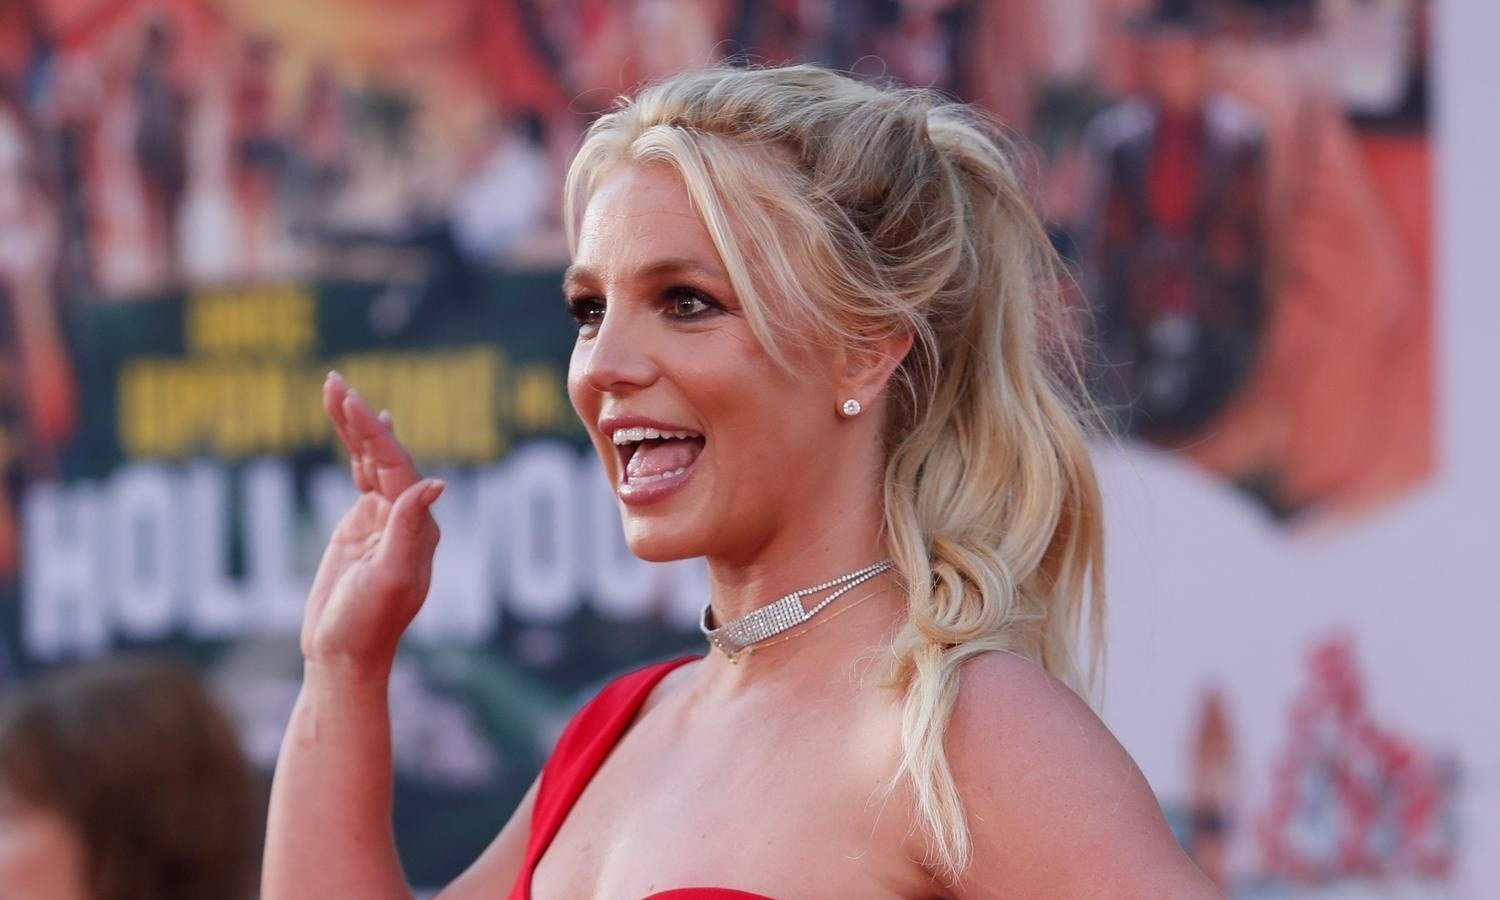 Britney Spears' lawyer seeks to oust her father from conservatorship